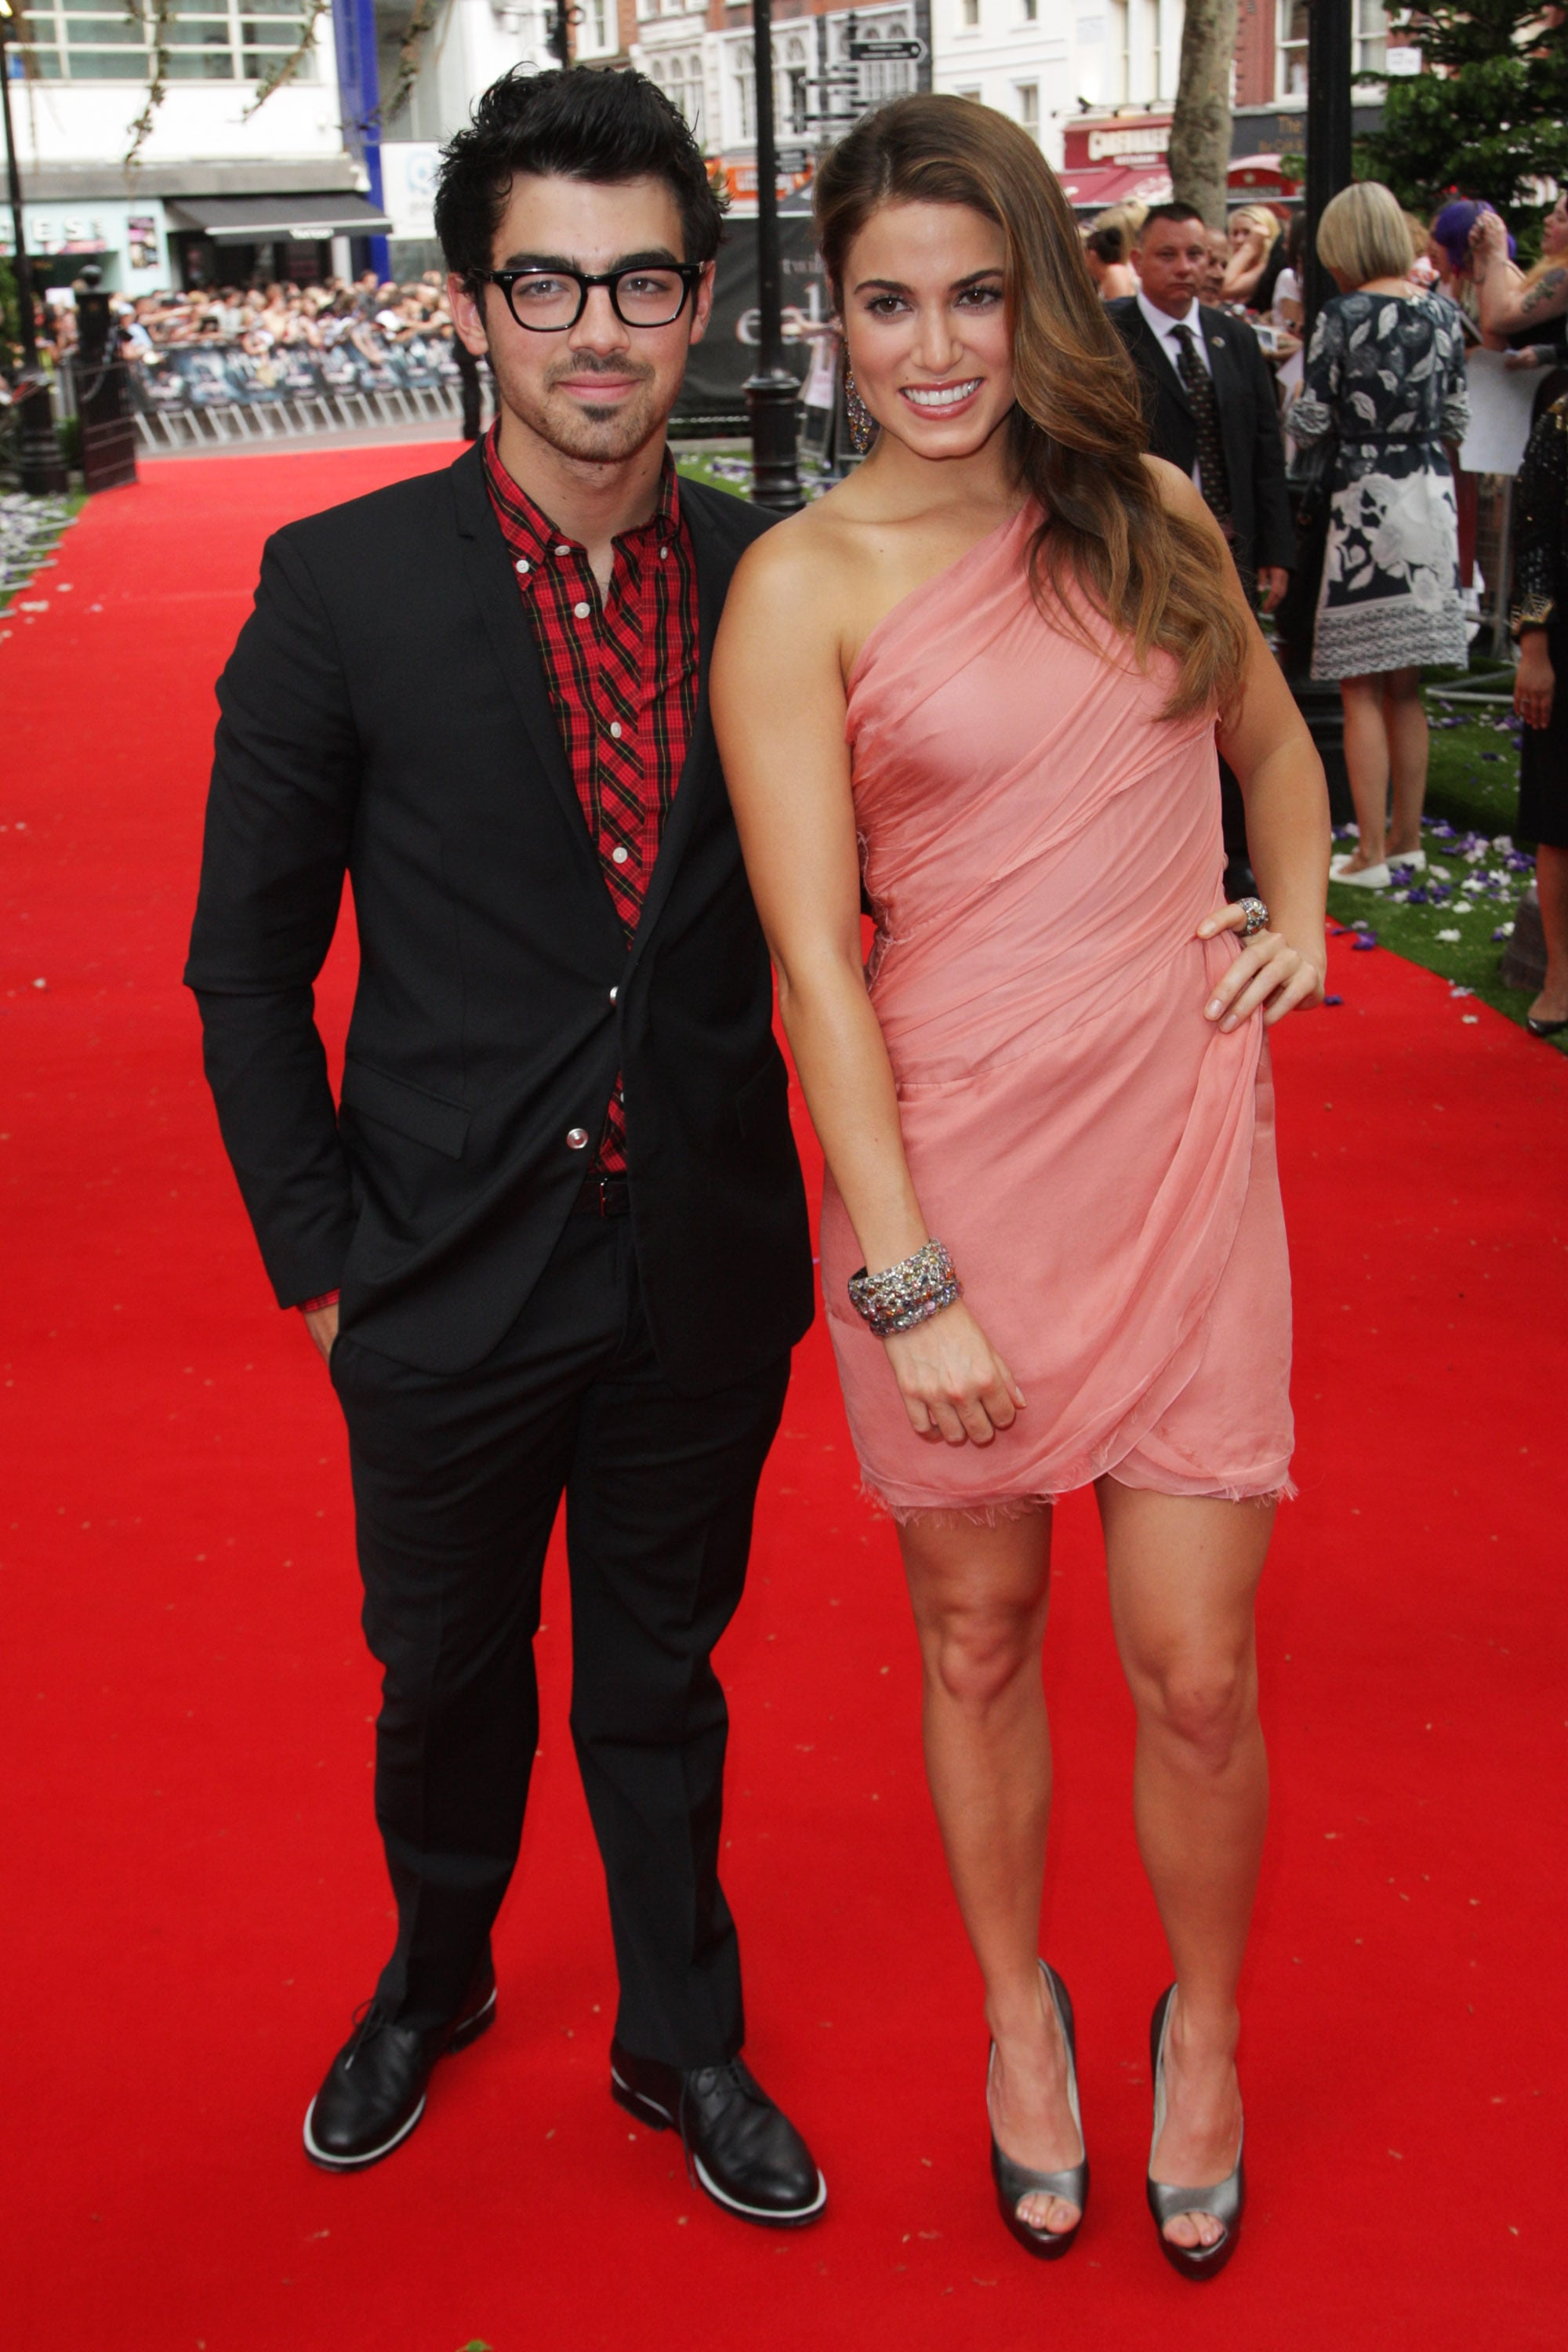 Pictures Of Nikki Reed And Joe Jonas At Eclipse London